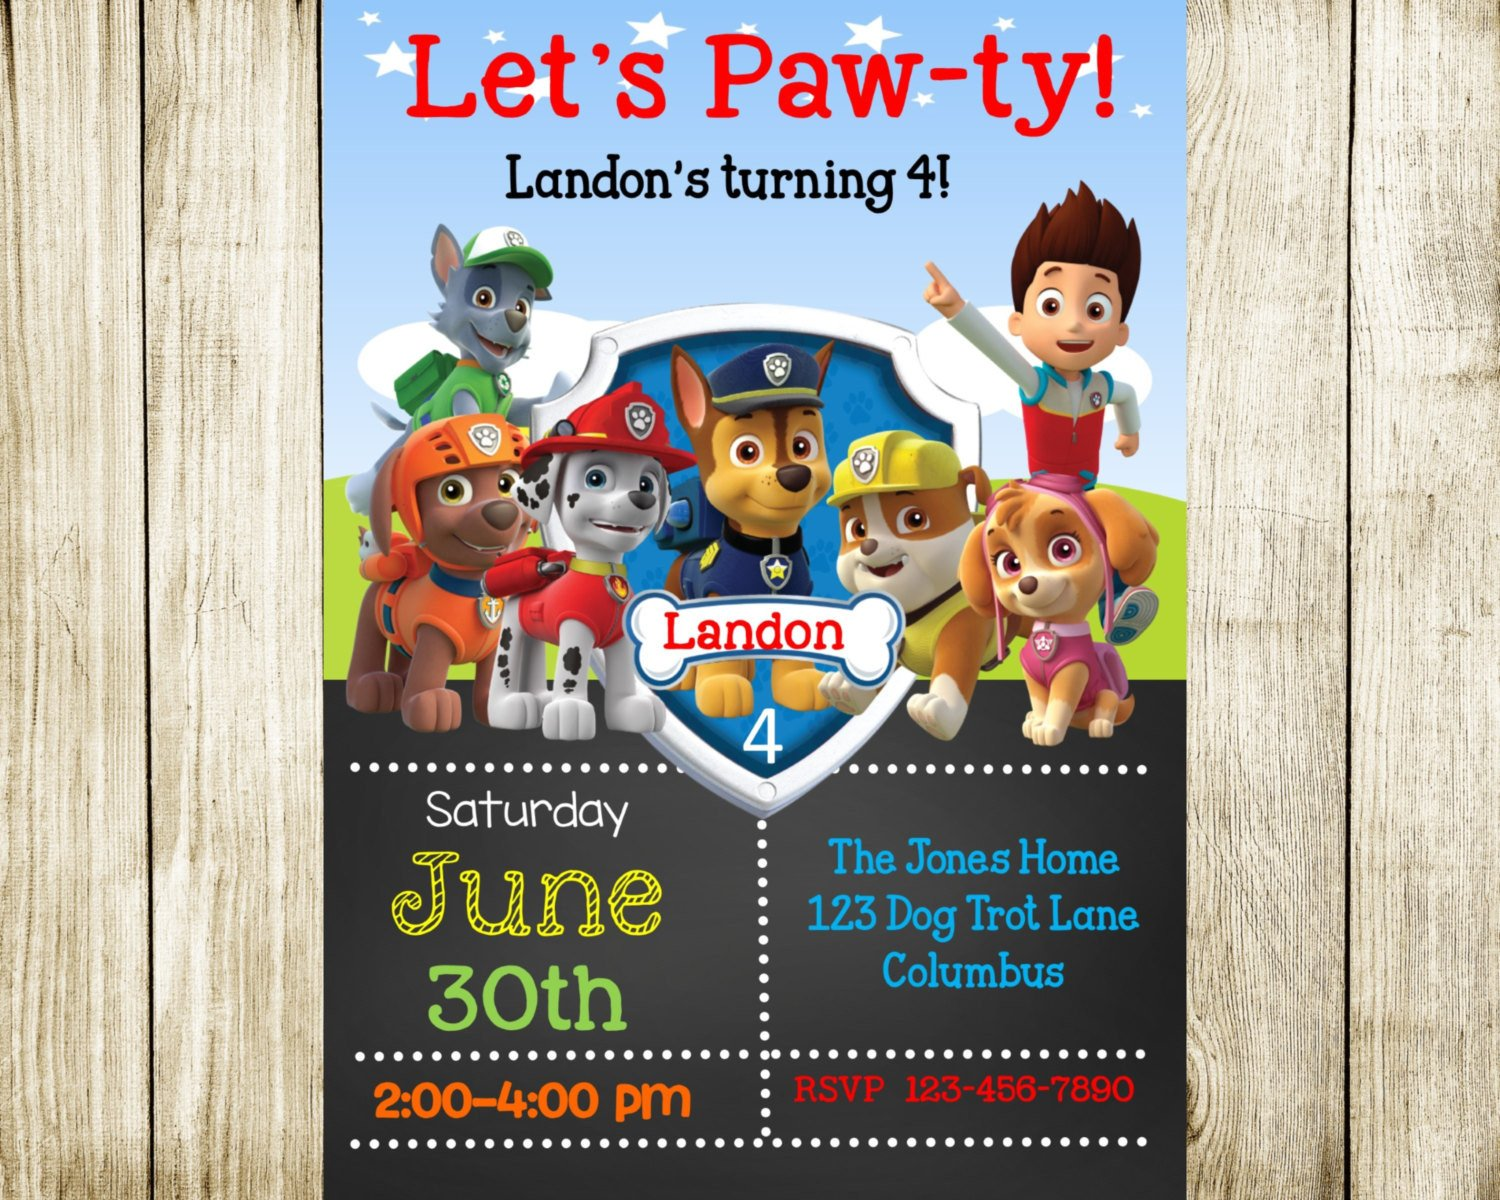 Paw Patrol Invitation Templates Paw Patrol Birthday Paw Patrol Invitation by Needmoredesigns